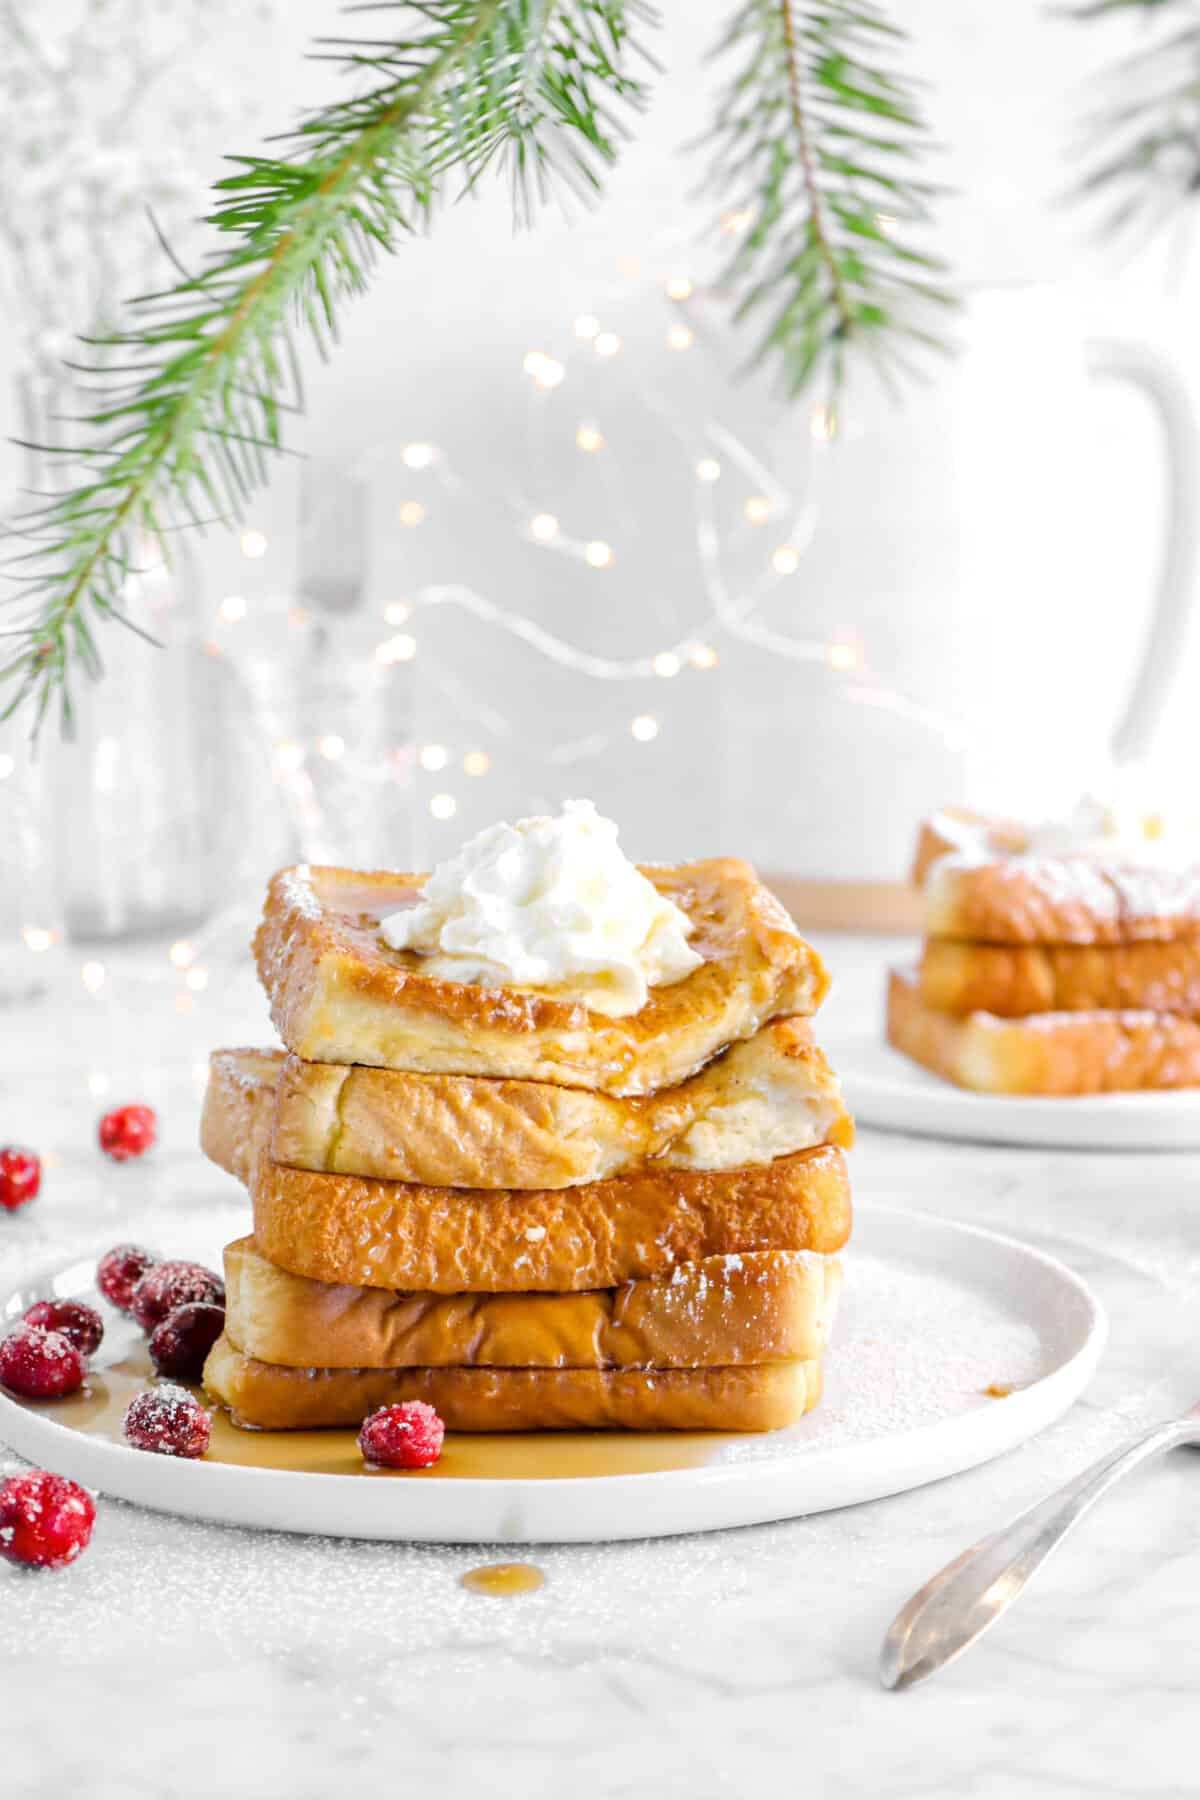 french toast on a white plate with greenery, more toast behind, fairy lights, and cranberries